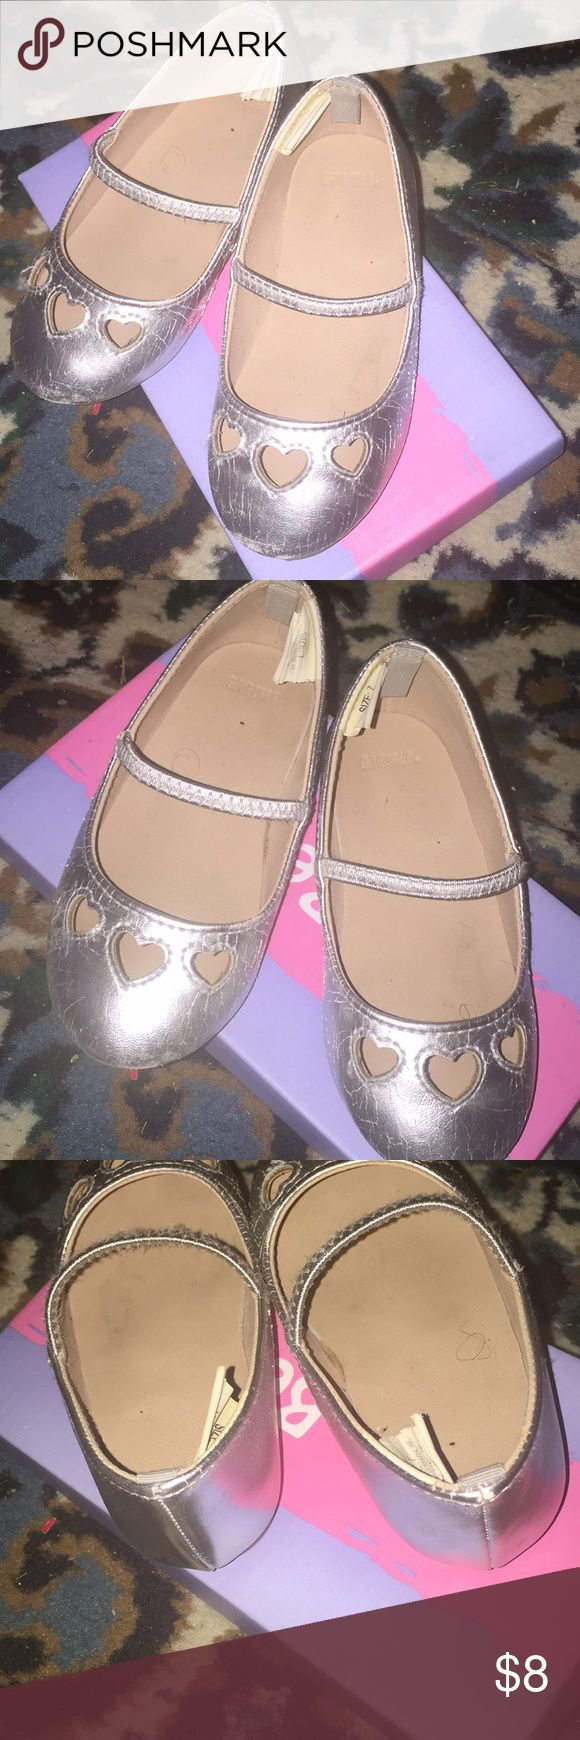 Toddler Girls Sz.7 Silver Ballet Flats Cute Toddler Girls Silver Sz. 7 Ballet Flats! Signs of Wear on Front & Sides Of Shoes! Heart Shaped Cut-Outs on Front of Shoes! A lot of Life Left in These! No Trades Gymboree Shoes Dress Shoes